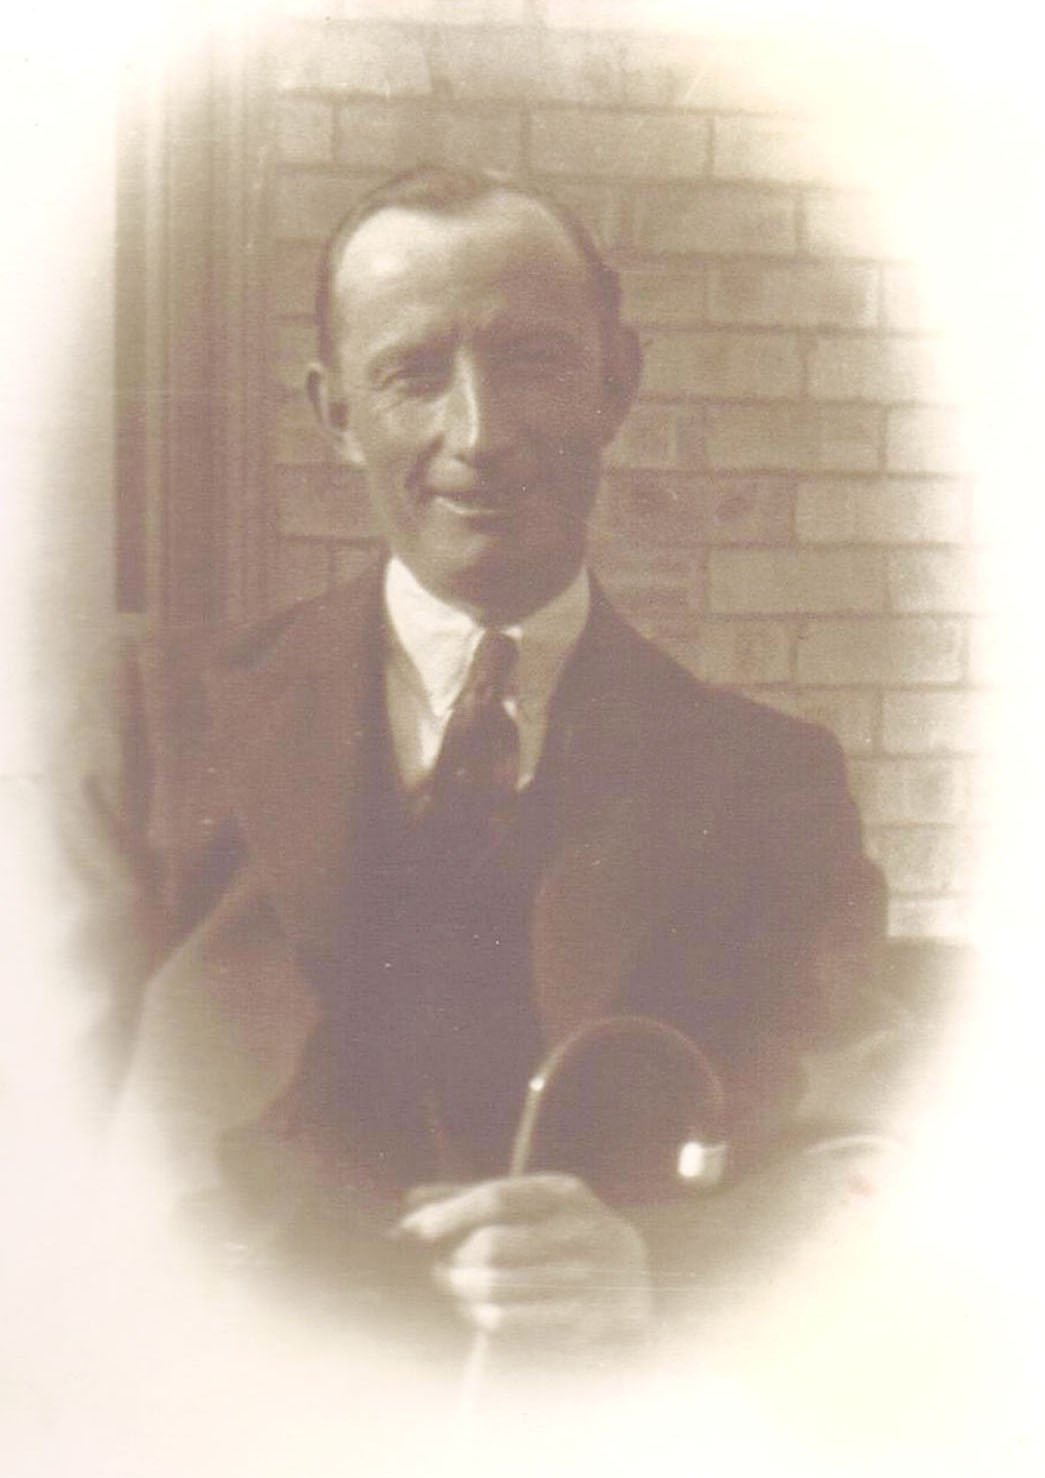 Tom Lake died young following a stroke in 1943.